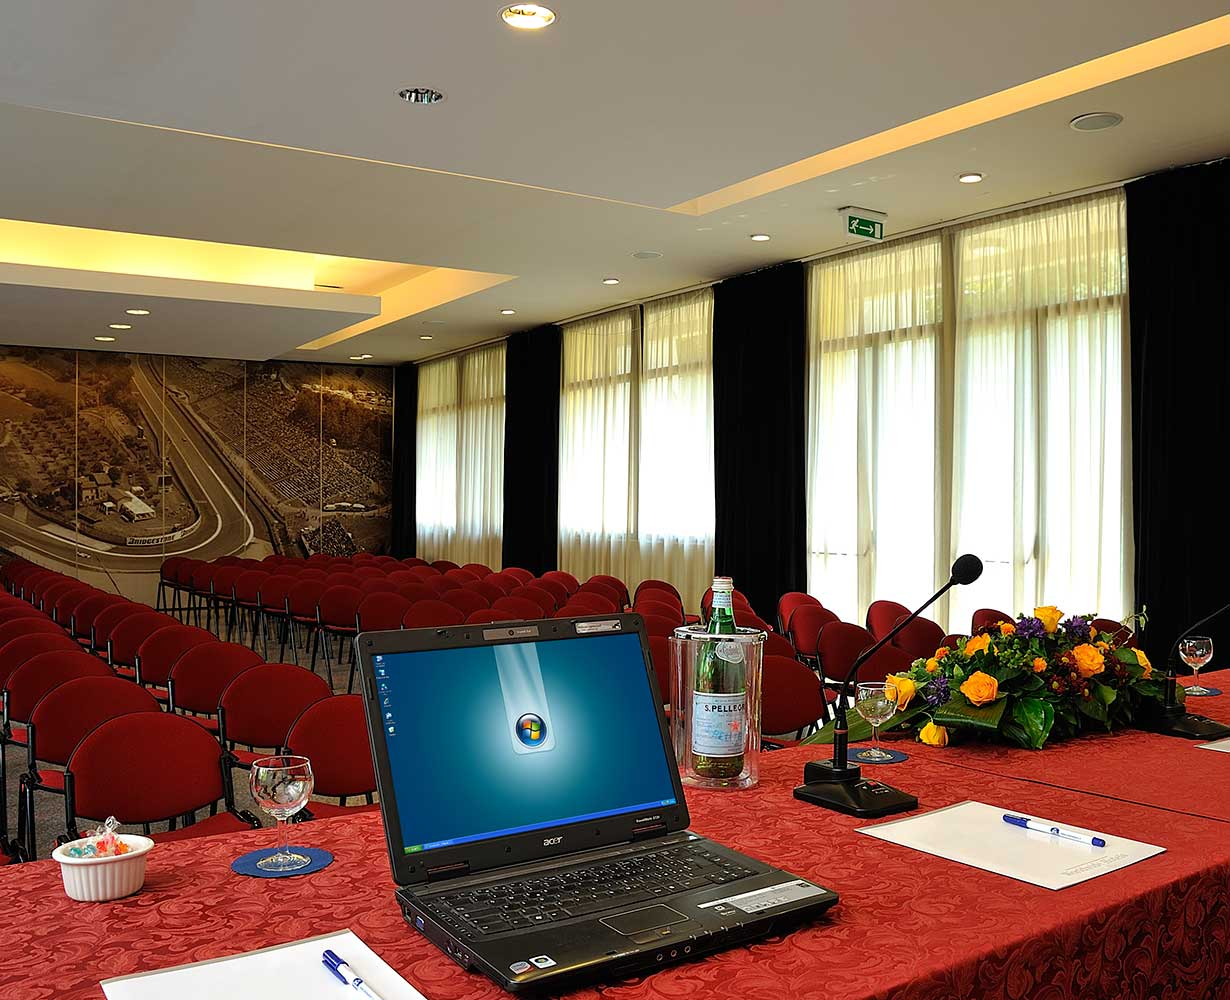 Sala Tosa in Business Hotel, Imola